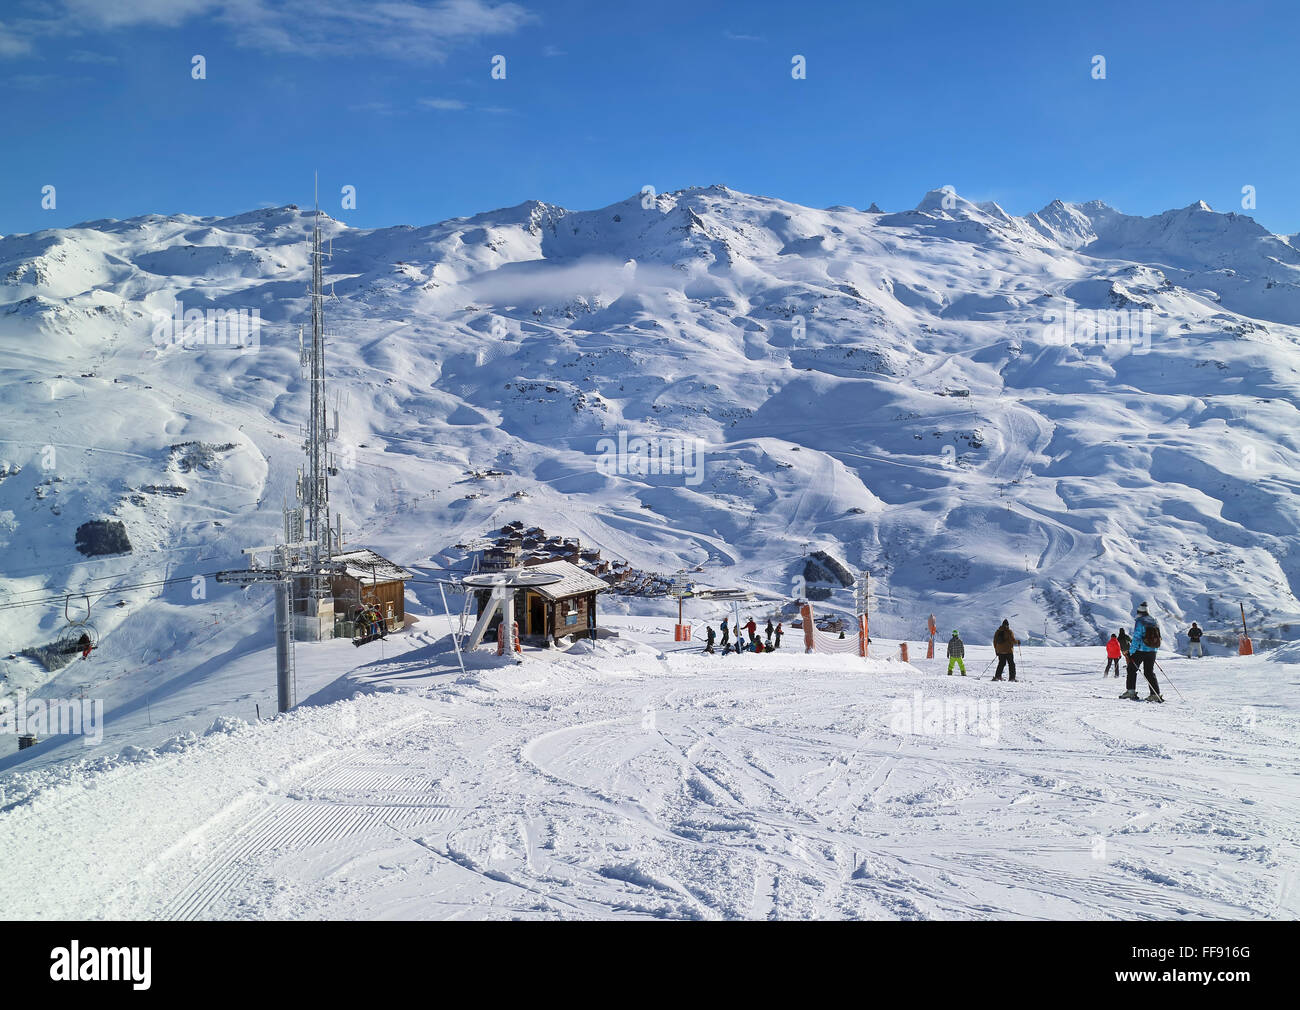 Les Menuires, Alps, France - February 04 2016: People skiing and snowboarding downhill on Masse piste above Les - Stock Image